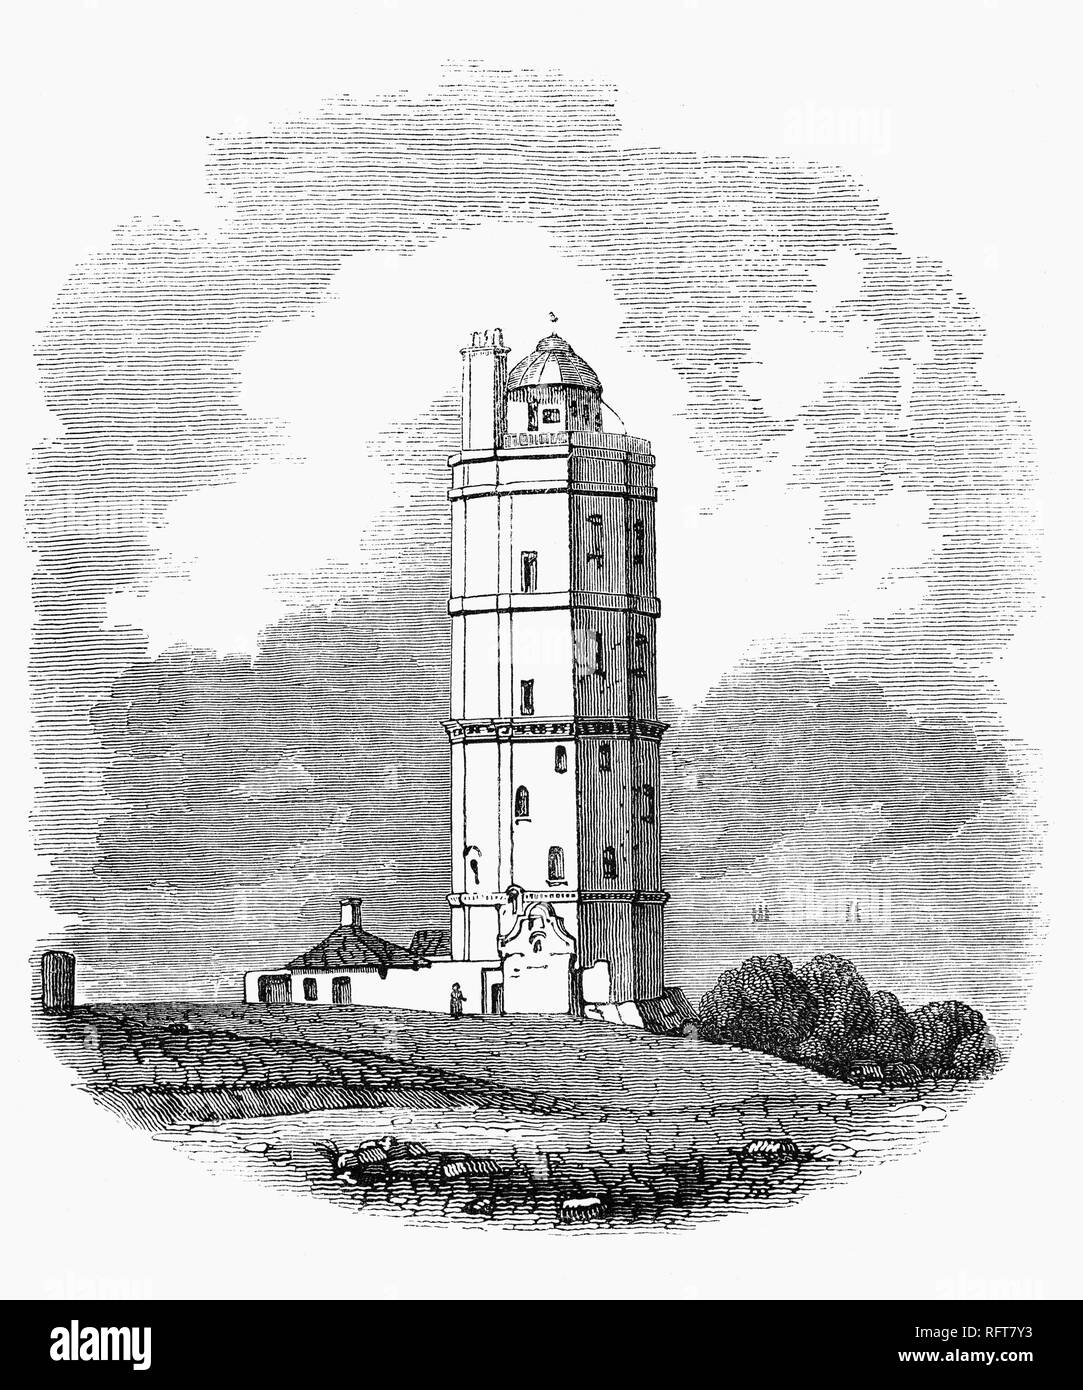 North Foreland Lighthouse on the chalk headland on the Kent coast of southeast England. The original lighthouse was burnt down in the year 1683, and replaced at the end of the same century with a strong octagonal structure of flint.  Erected on the top was an iron grate quite open to the air in which a fire was kept blazing at night. Around 1732 the top of this lighthouse was covered with a sort of lantern with large sash windows with the fire was kept bright by bellows. However the plan did not work well and many vessels were lost on the sands from not seeing the light. - Stock Image